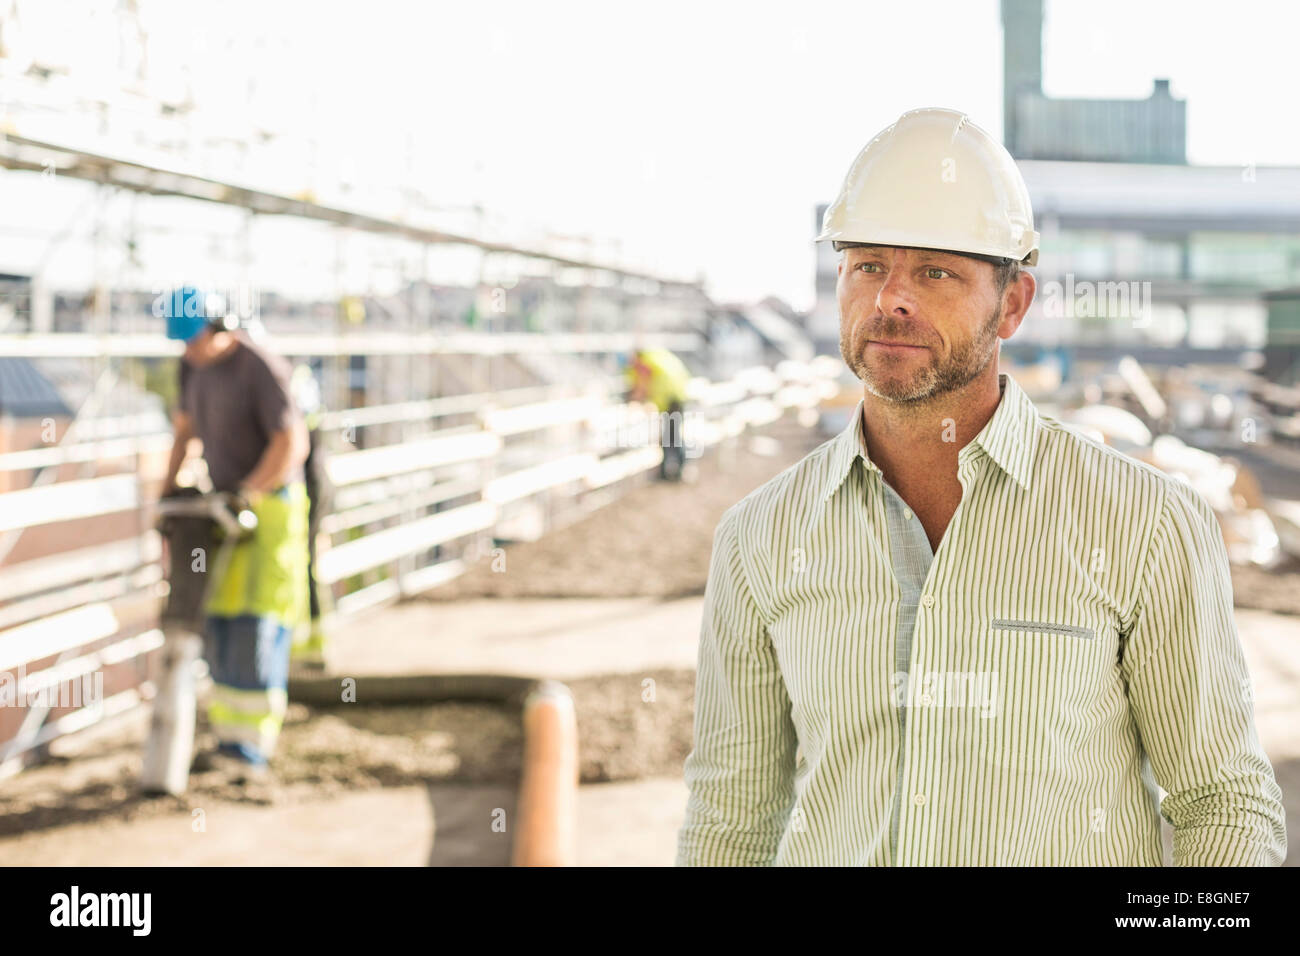 Architect looking away while standing at construction site - Stock Image